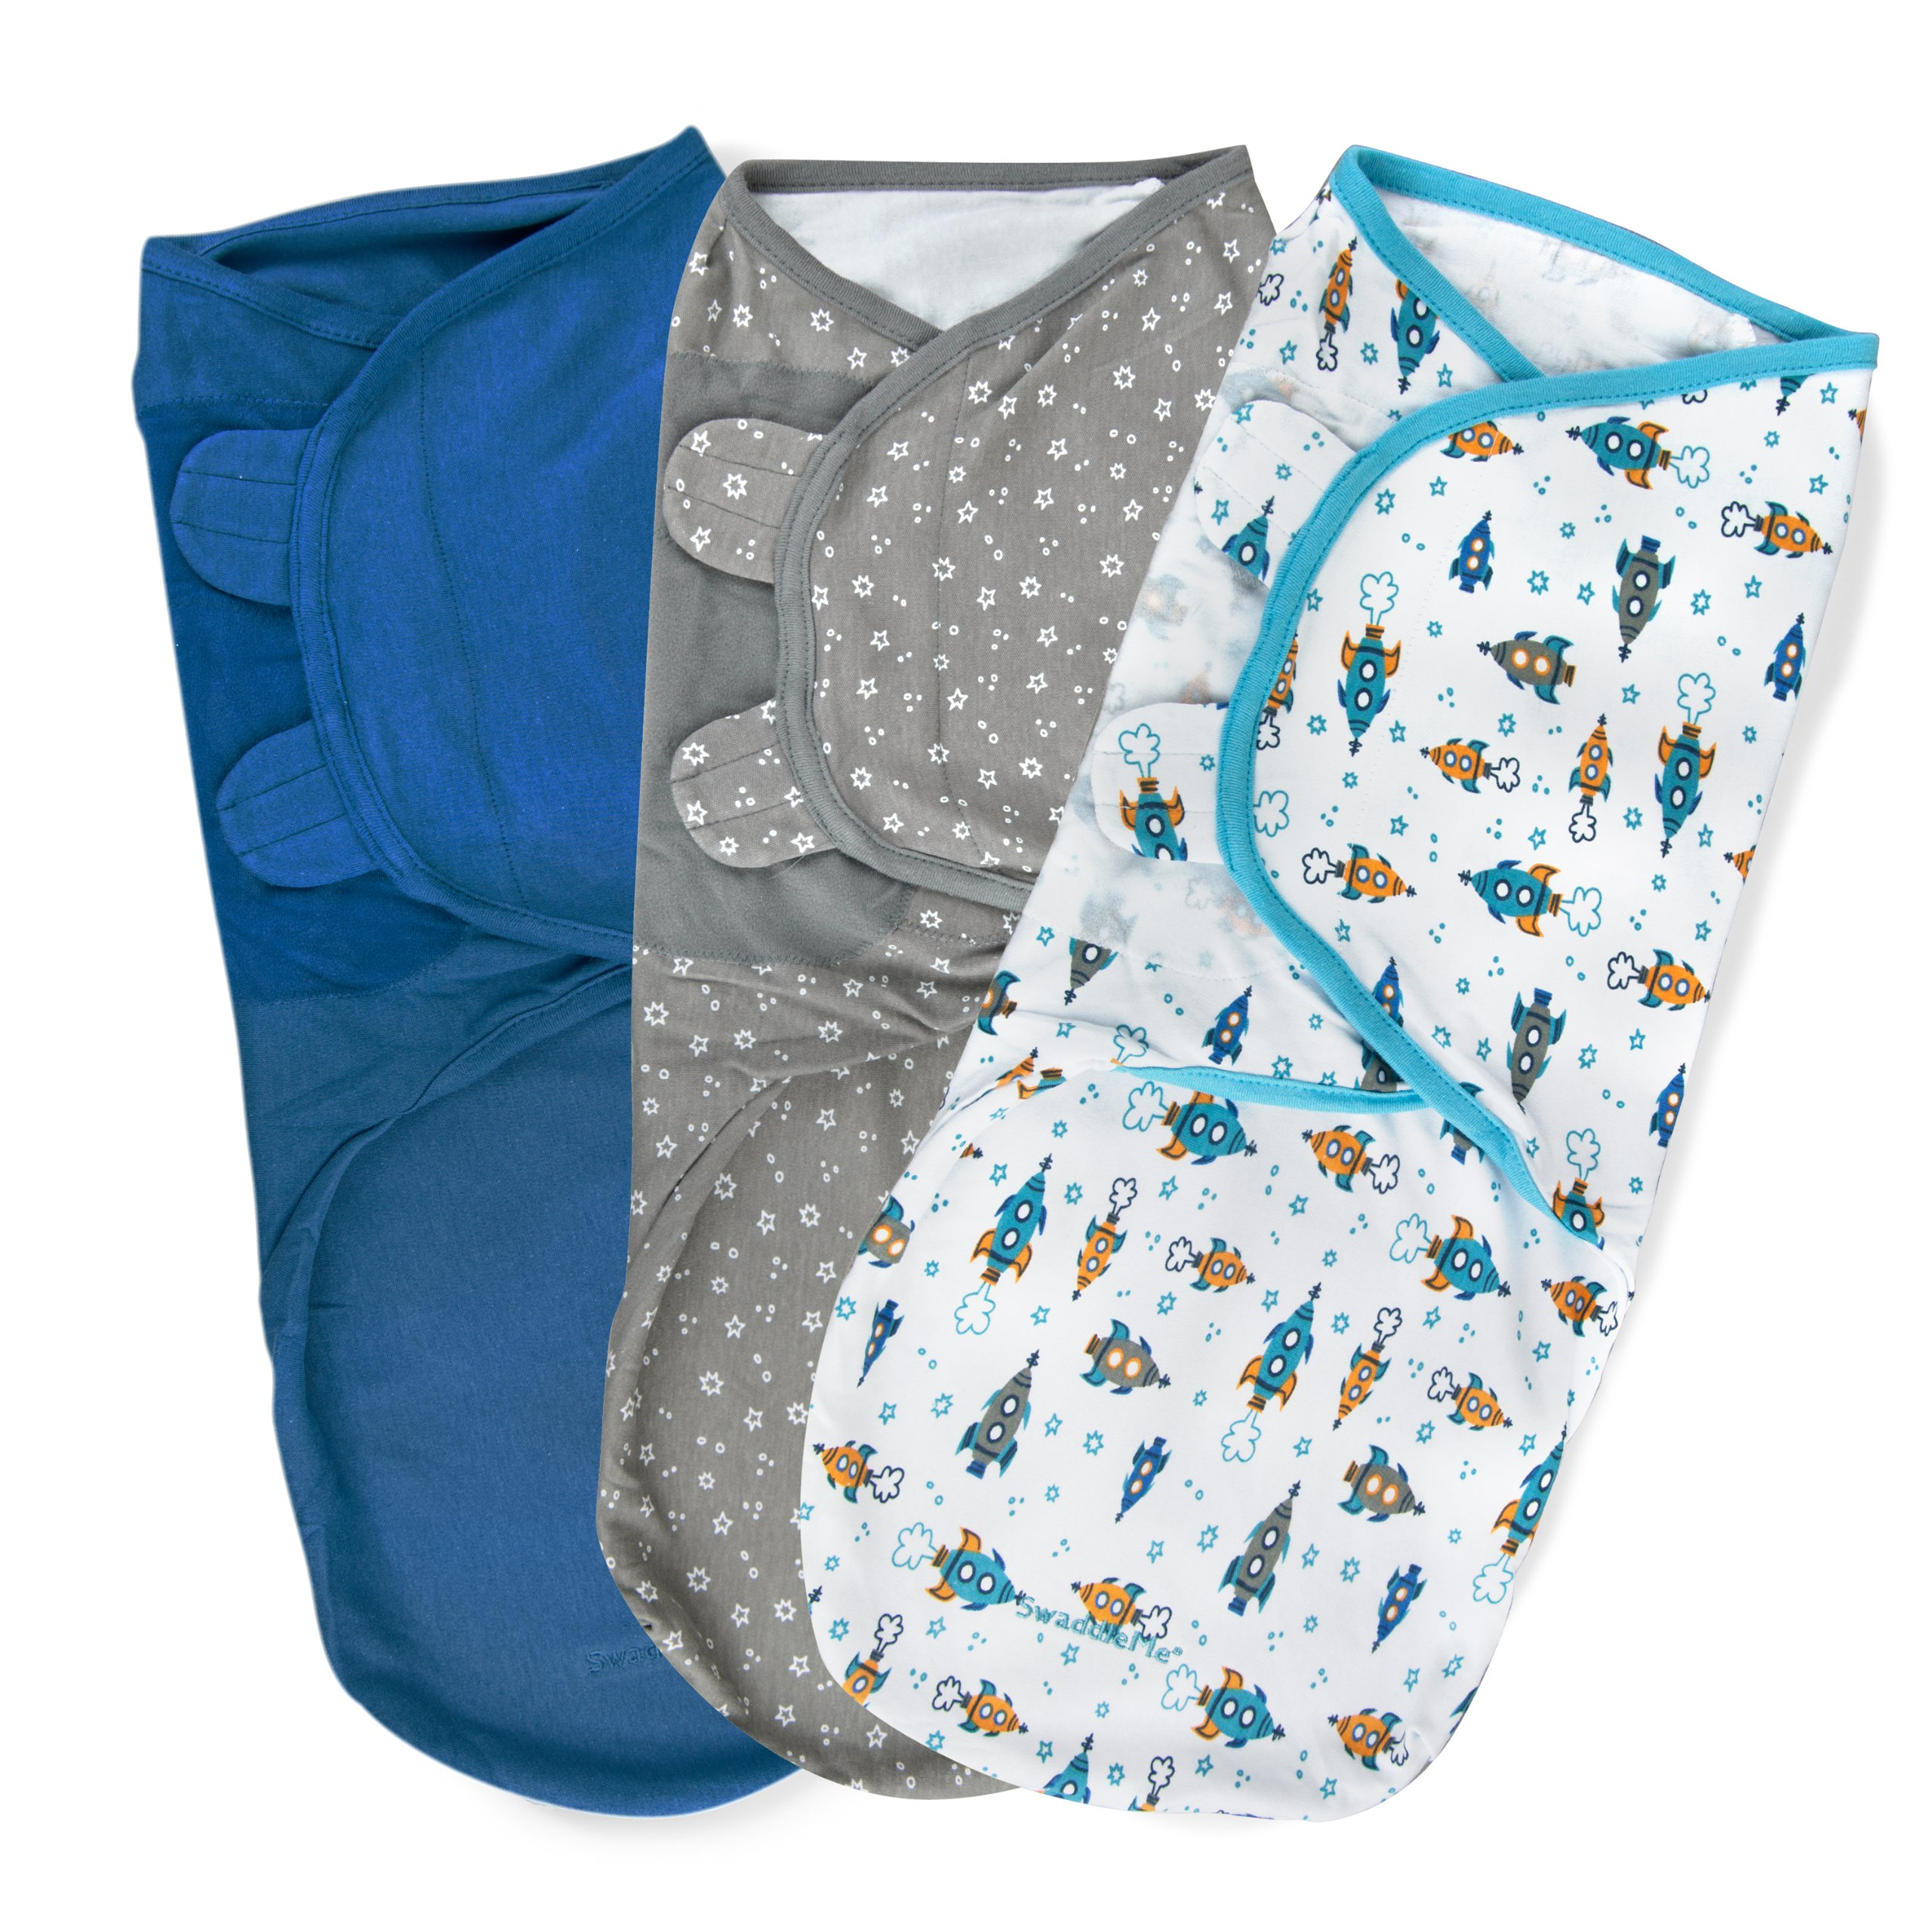 Summer Infant SwaddleMe Adjustable Infant Wrap, Superstar, Large, 3 Count